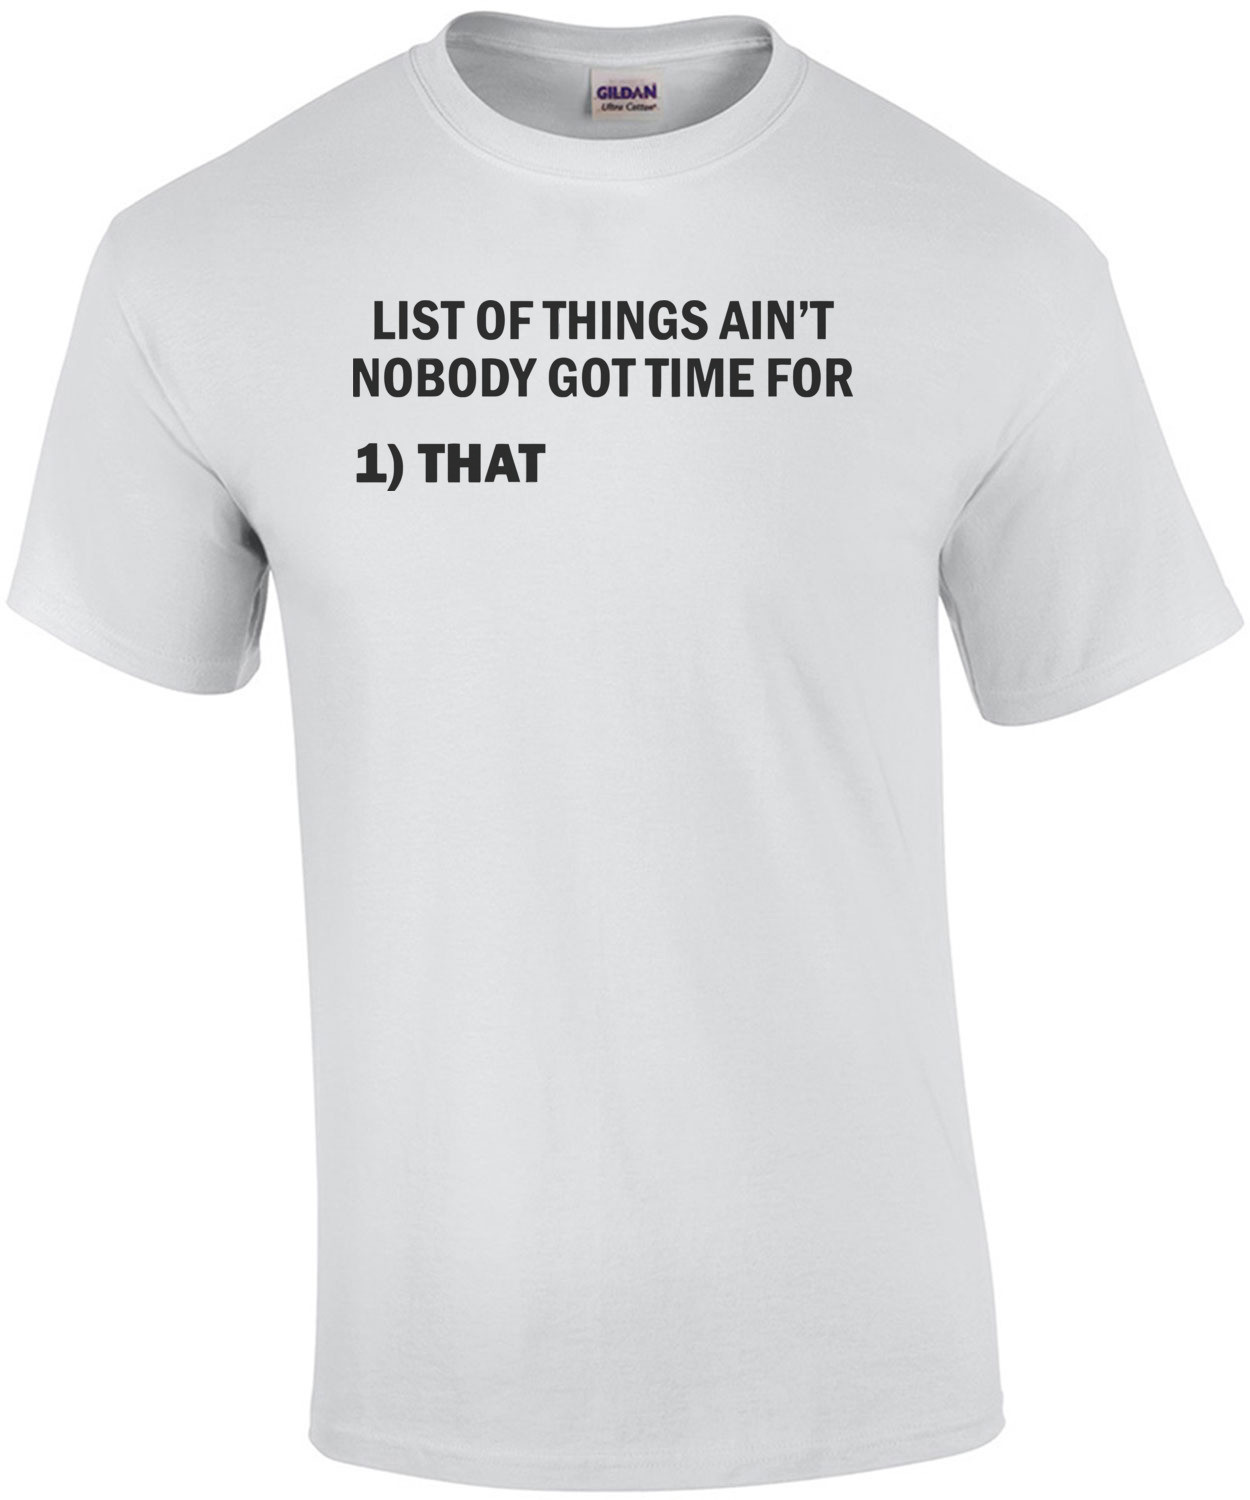 List Of Things Ain't Nobody Got Time For Shirt